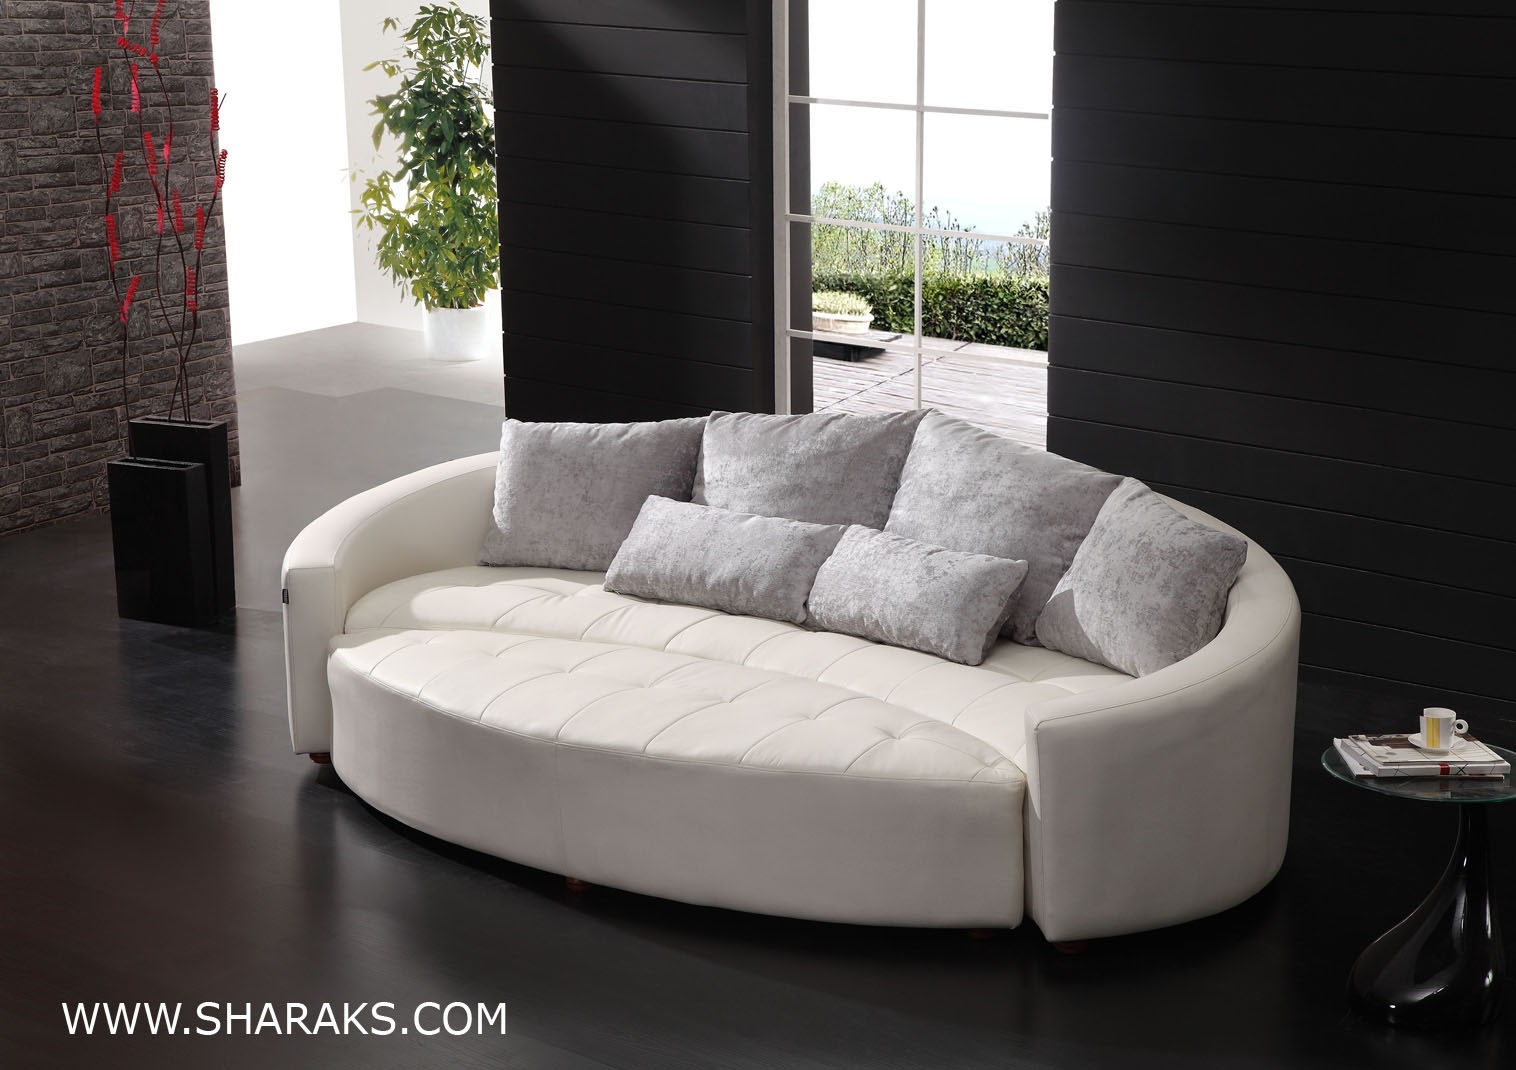 Stylish 1000 Images About Curved Couch Ideas On Pinterest Curved Throughout Contemporary Curved Sofas (Image 11 of 15)